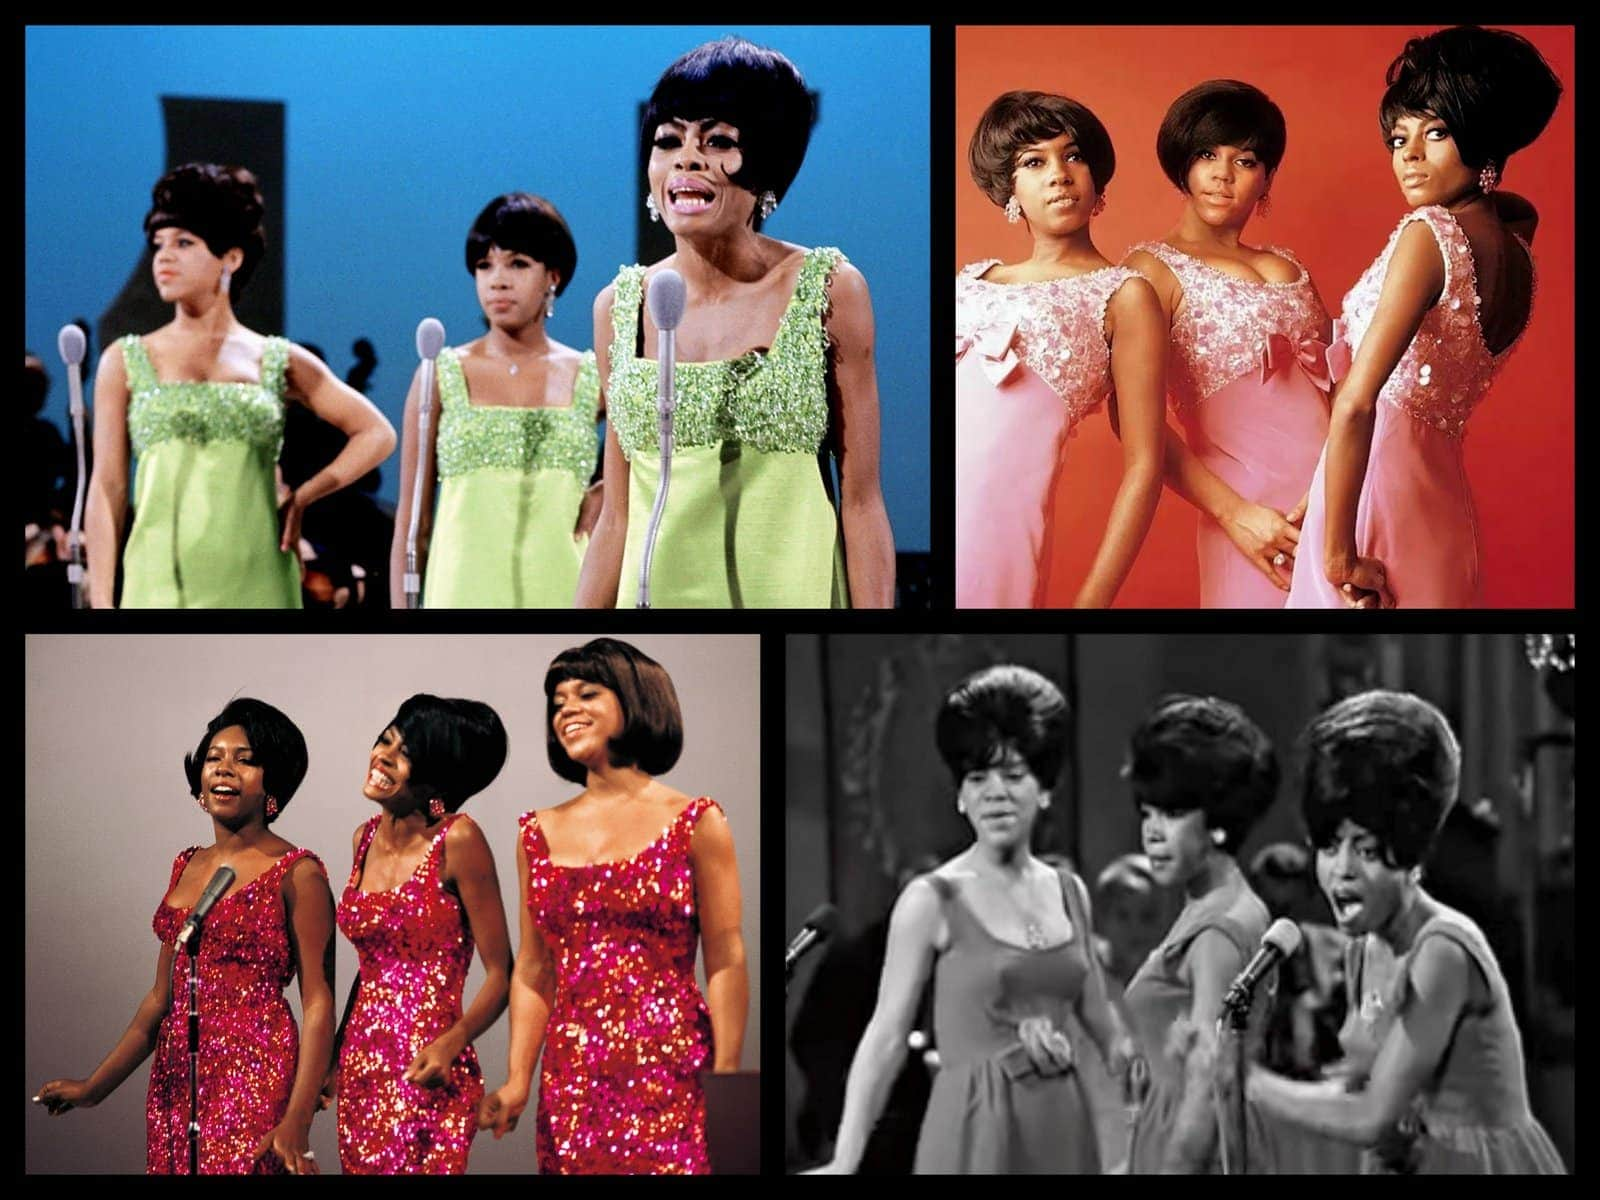 Diana Ross & Supremes dieulois